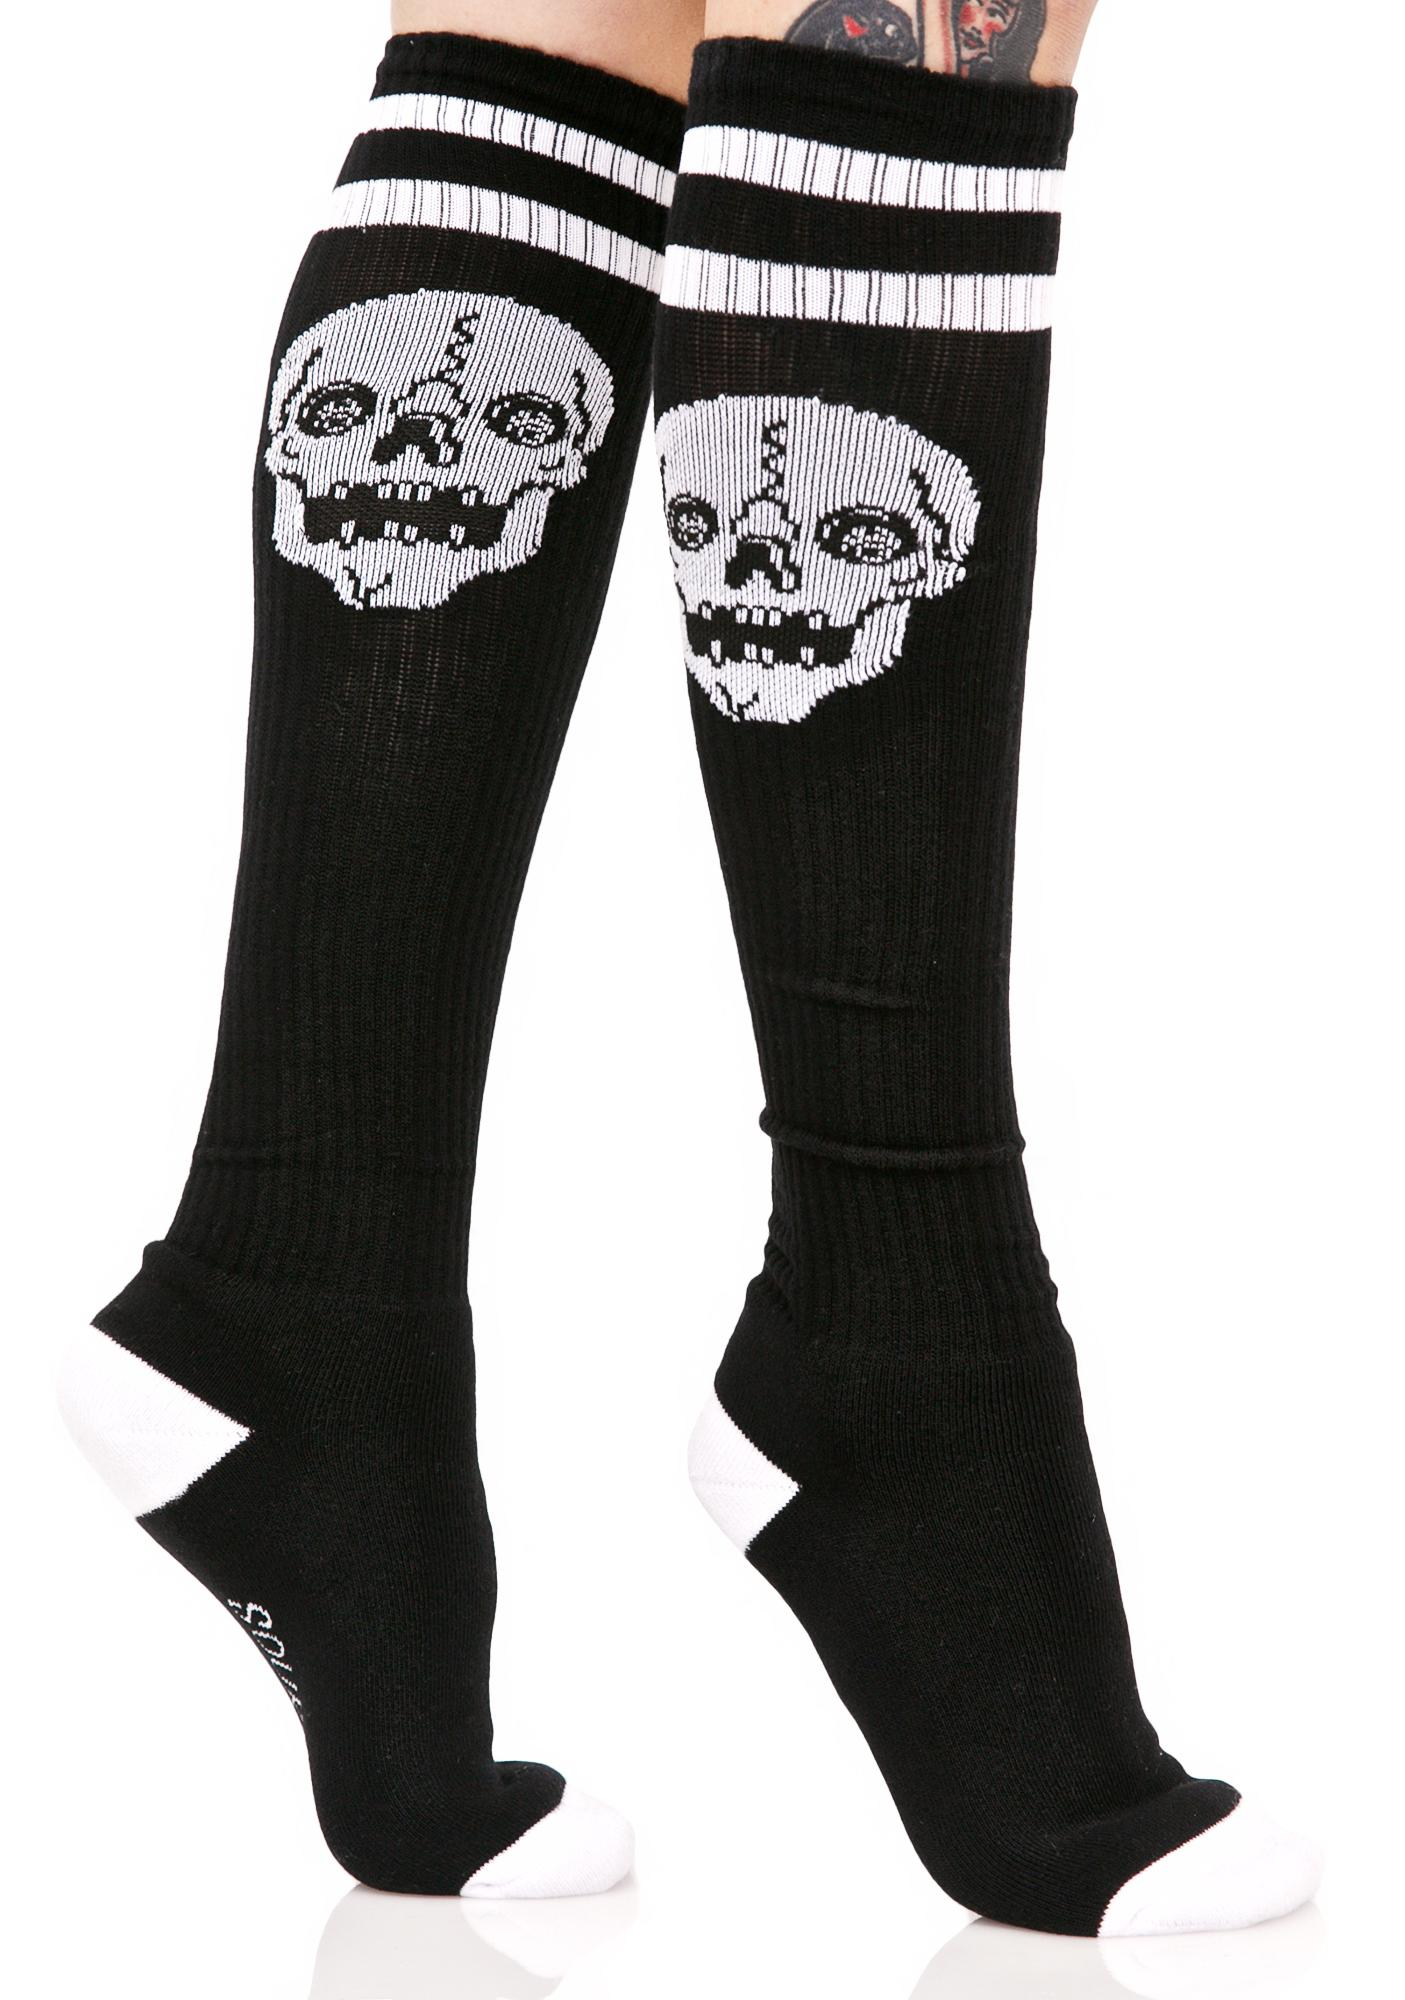 Sourpuss Clothing Skelly Knee High Socks